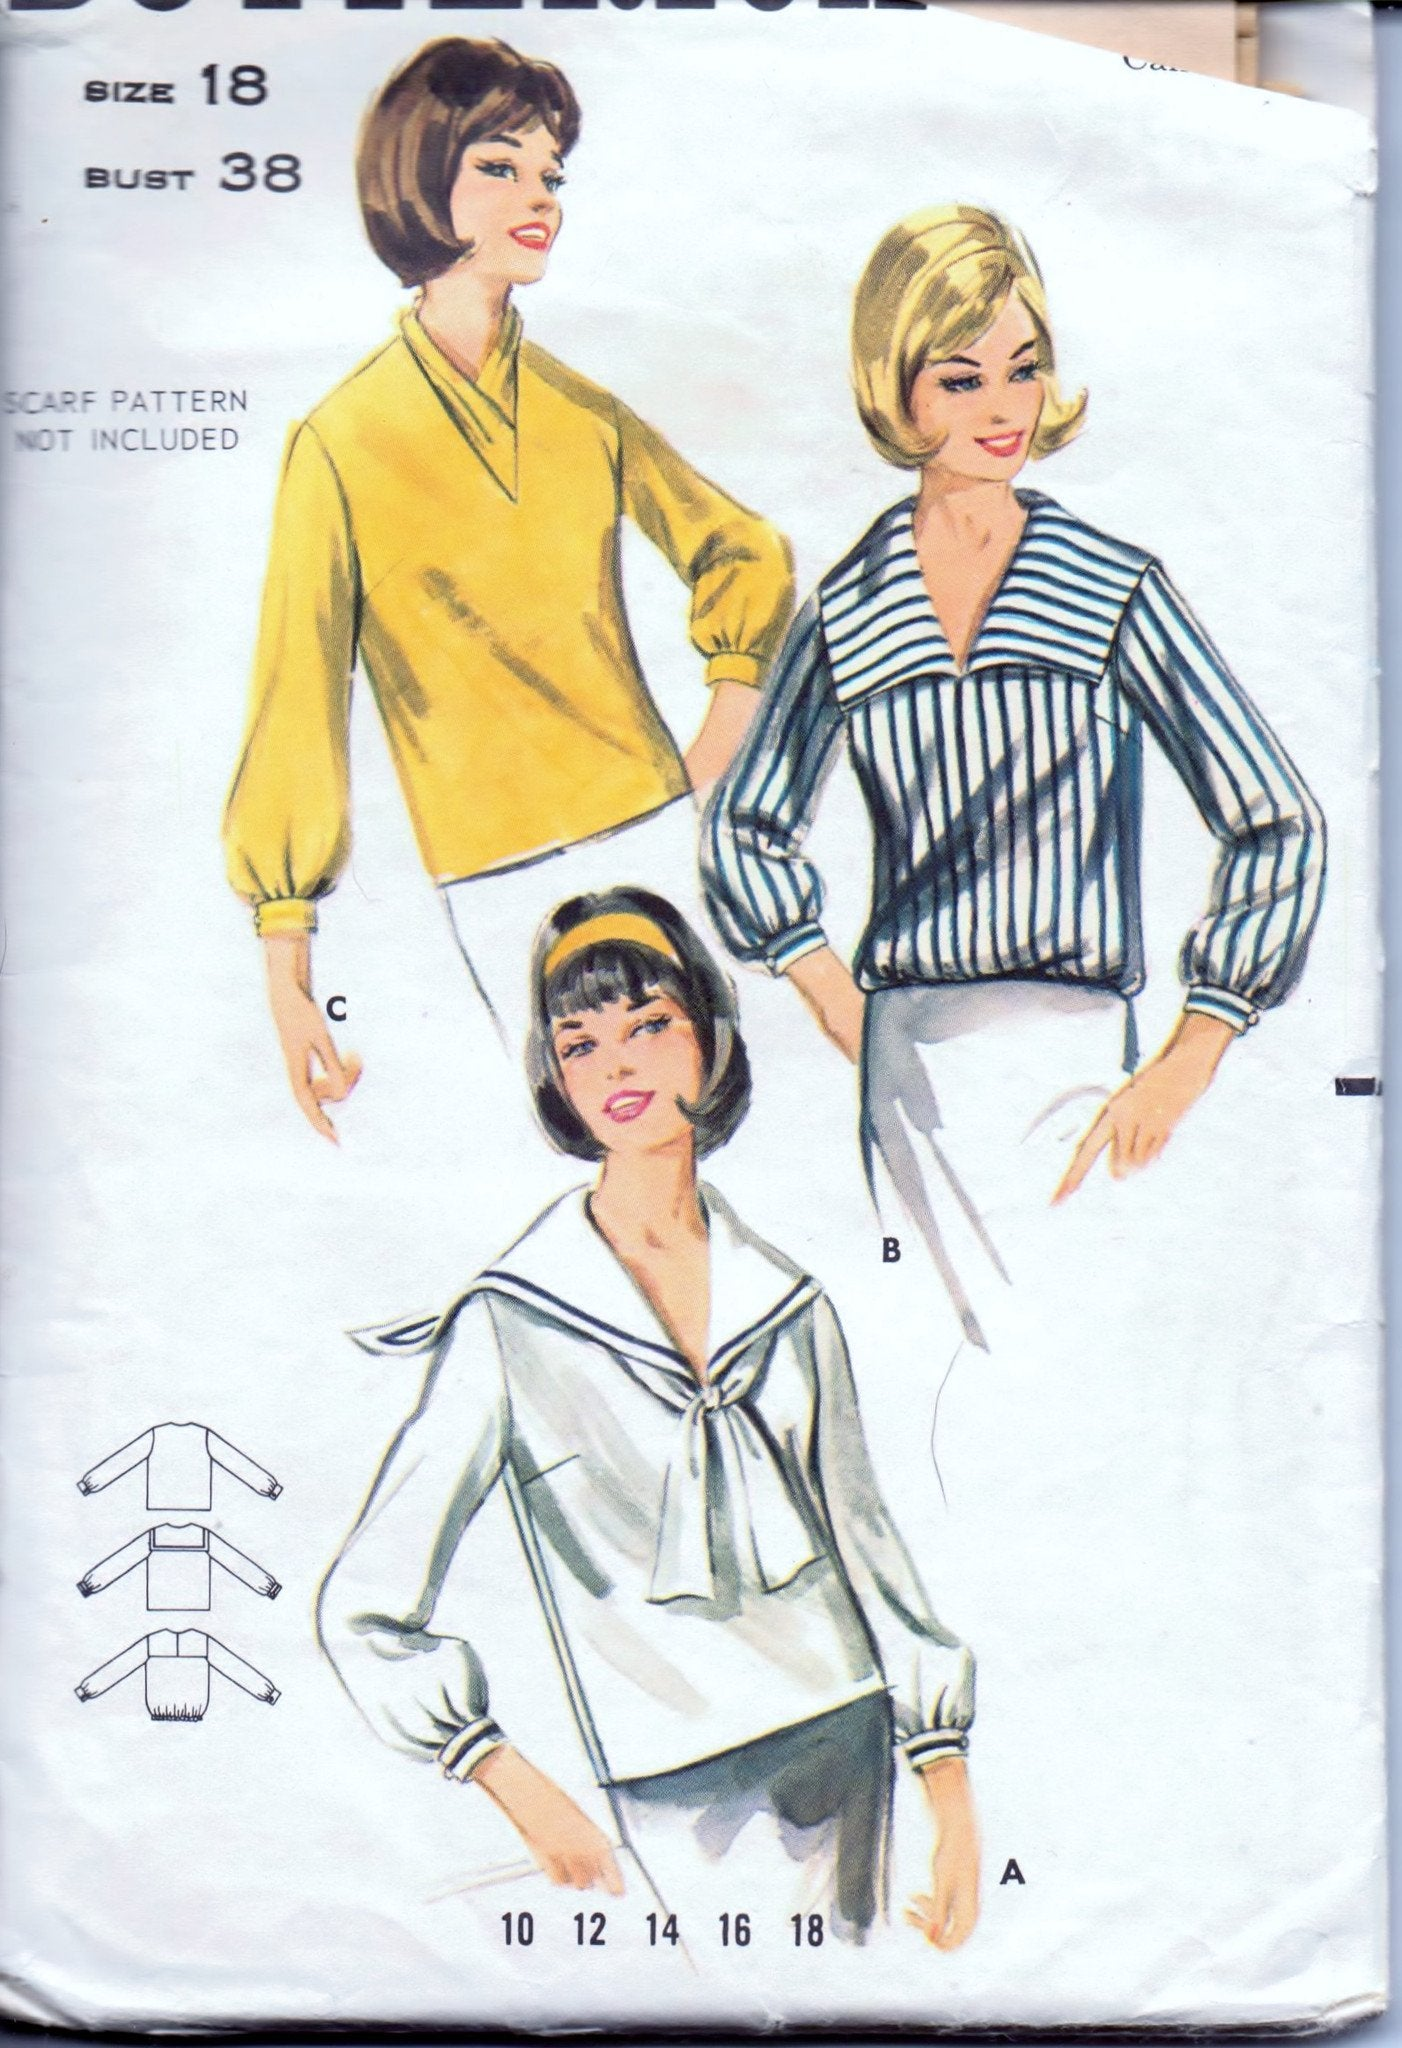 Butterick 3300 Ladies Sailor Blouse Vintage 1970's Sewing Pattern - VintageStitching - Vintage Sewing Patterns